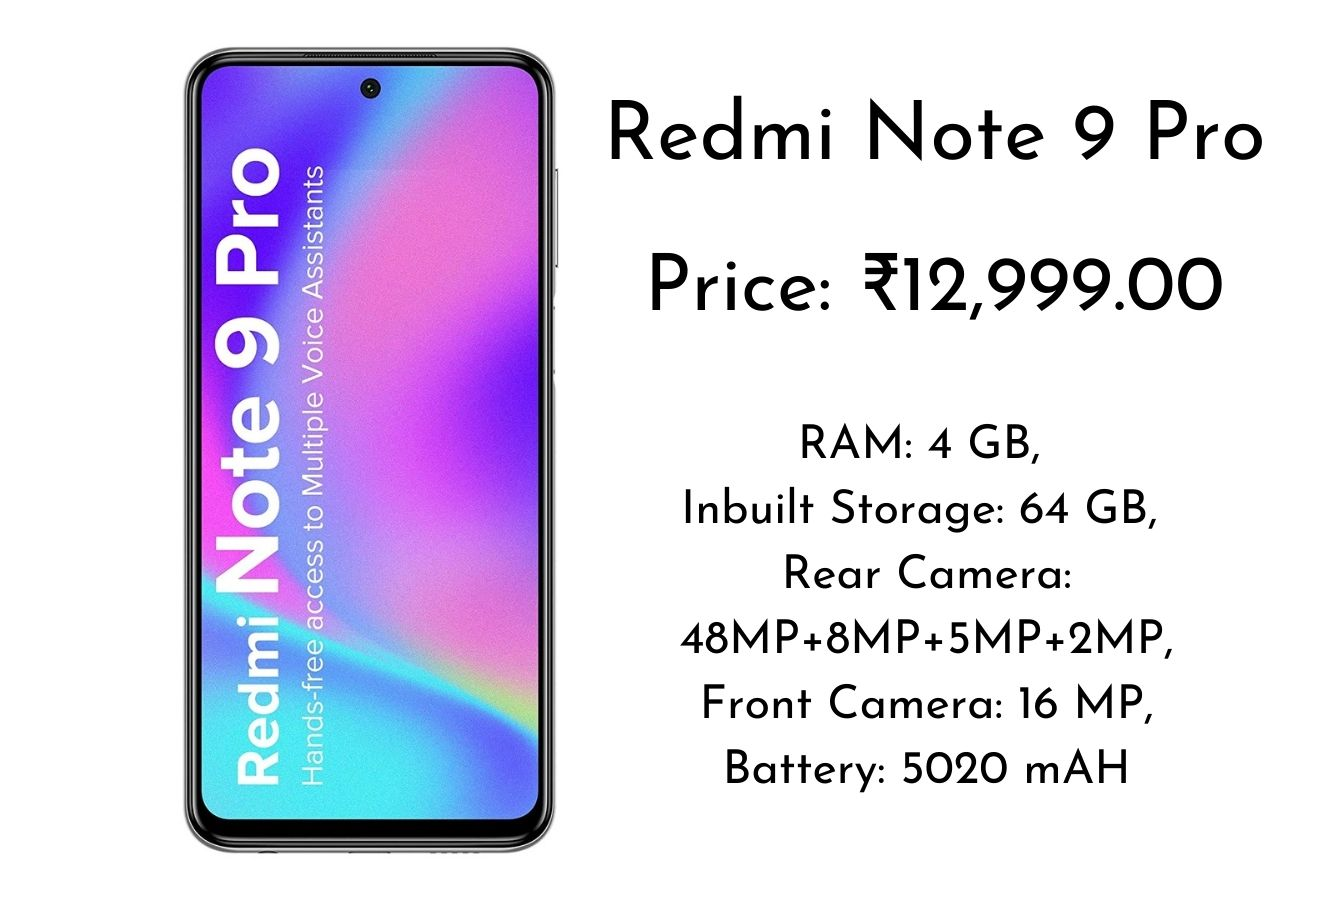 Xiaomi Redmi Note 9 Pro price and specification - Buy on Amazon